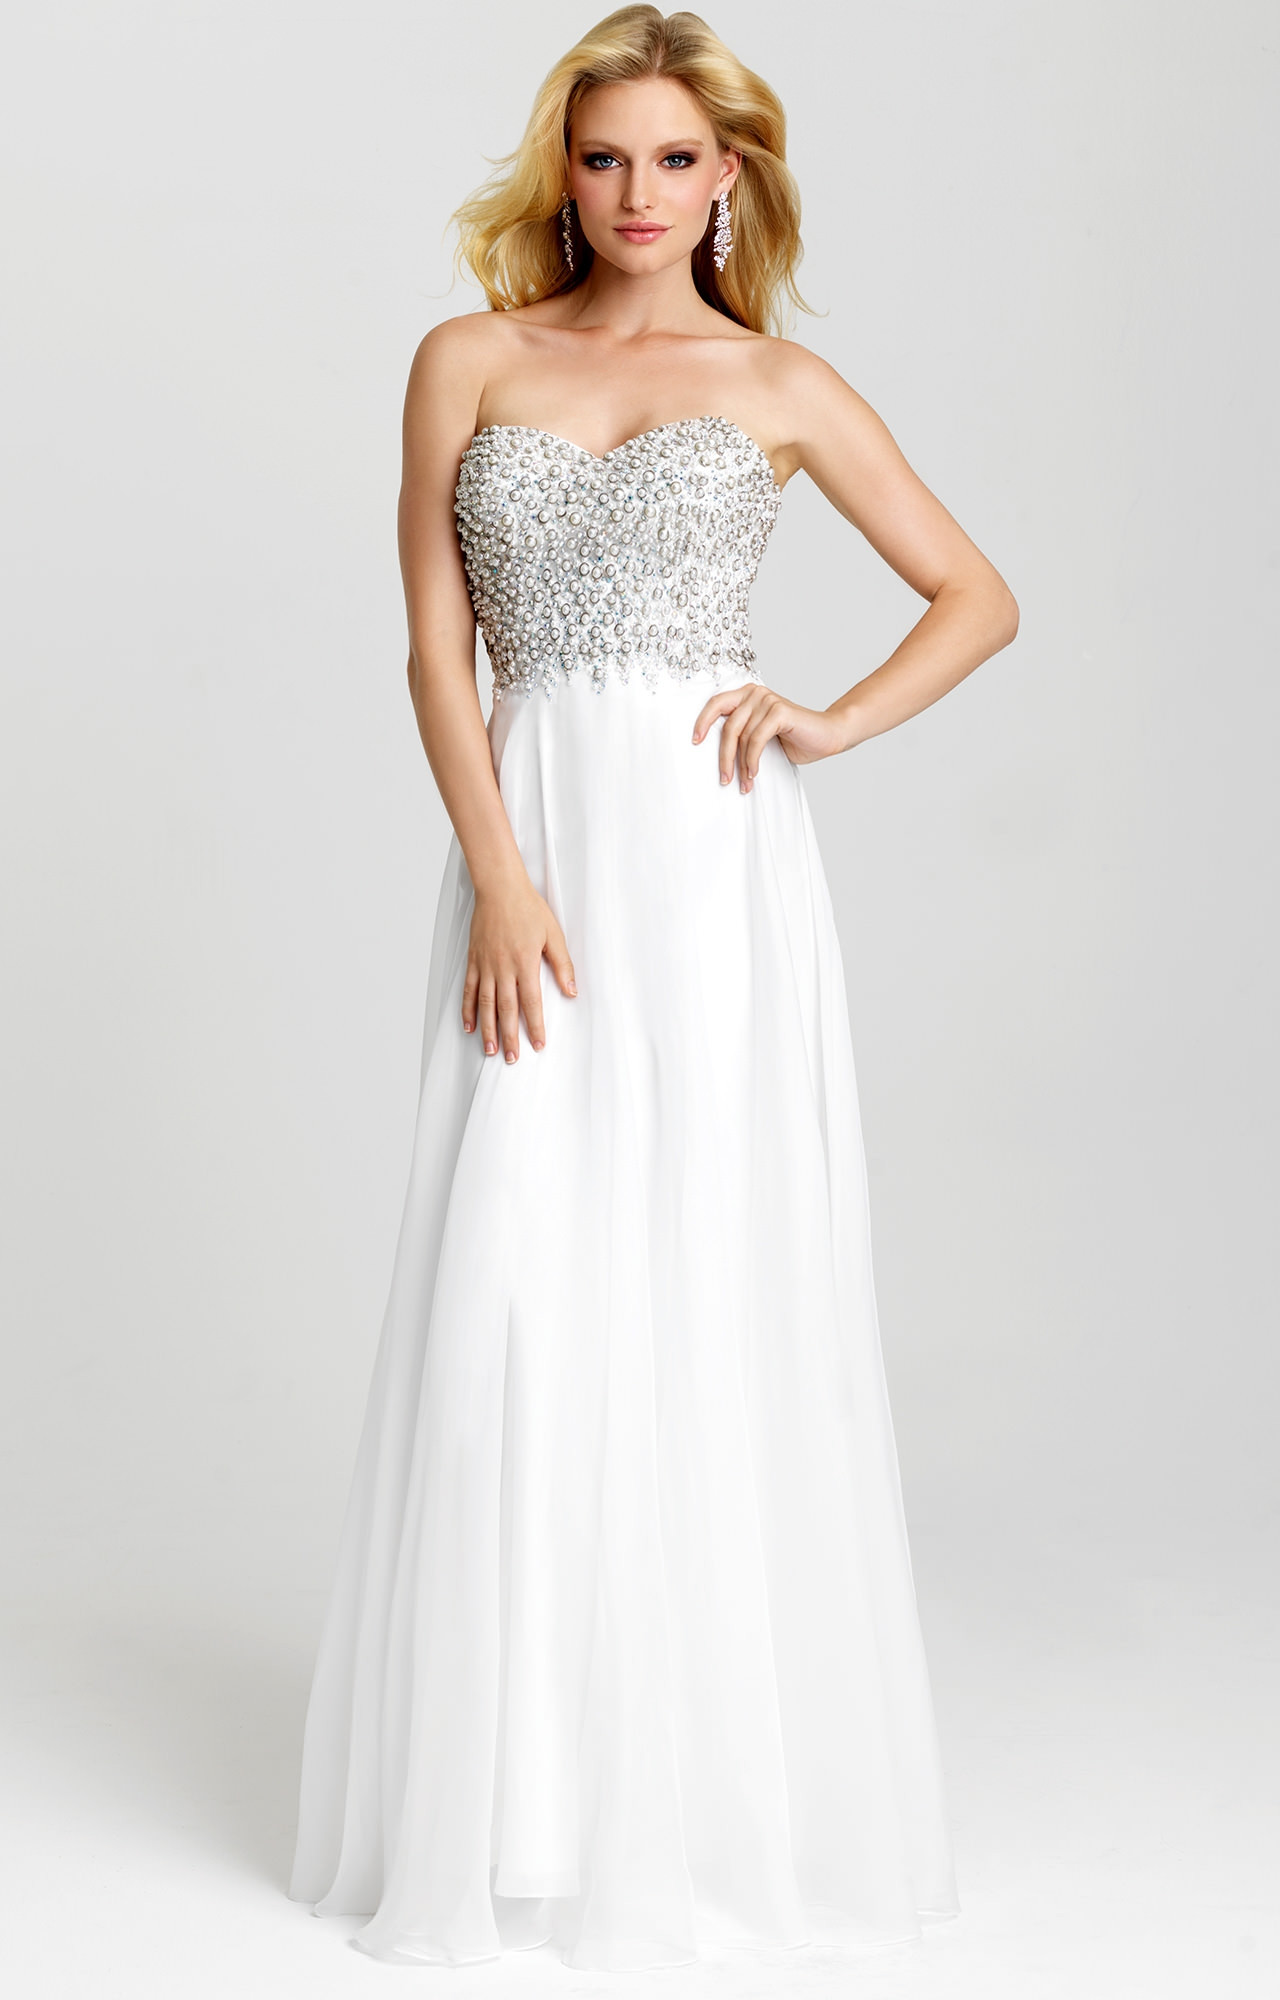 Madison James 16 368 Fly Me To The Moon Gown Prom Dress